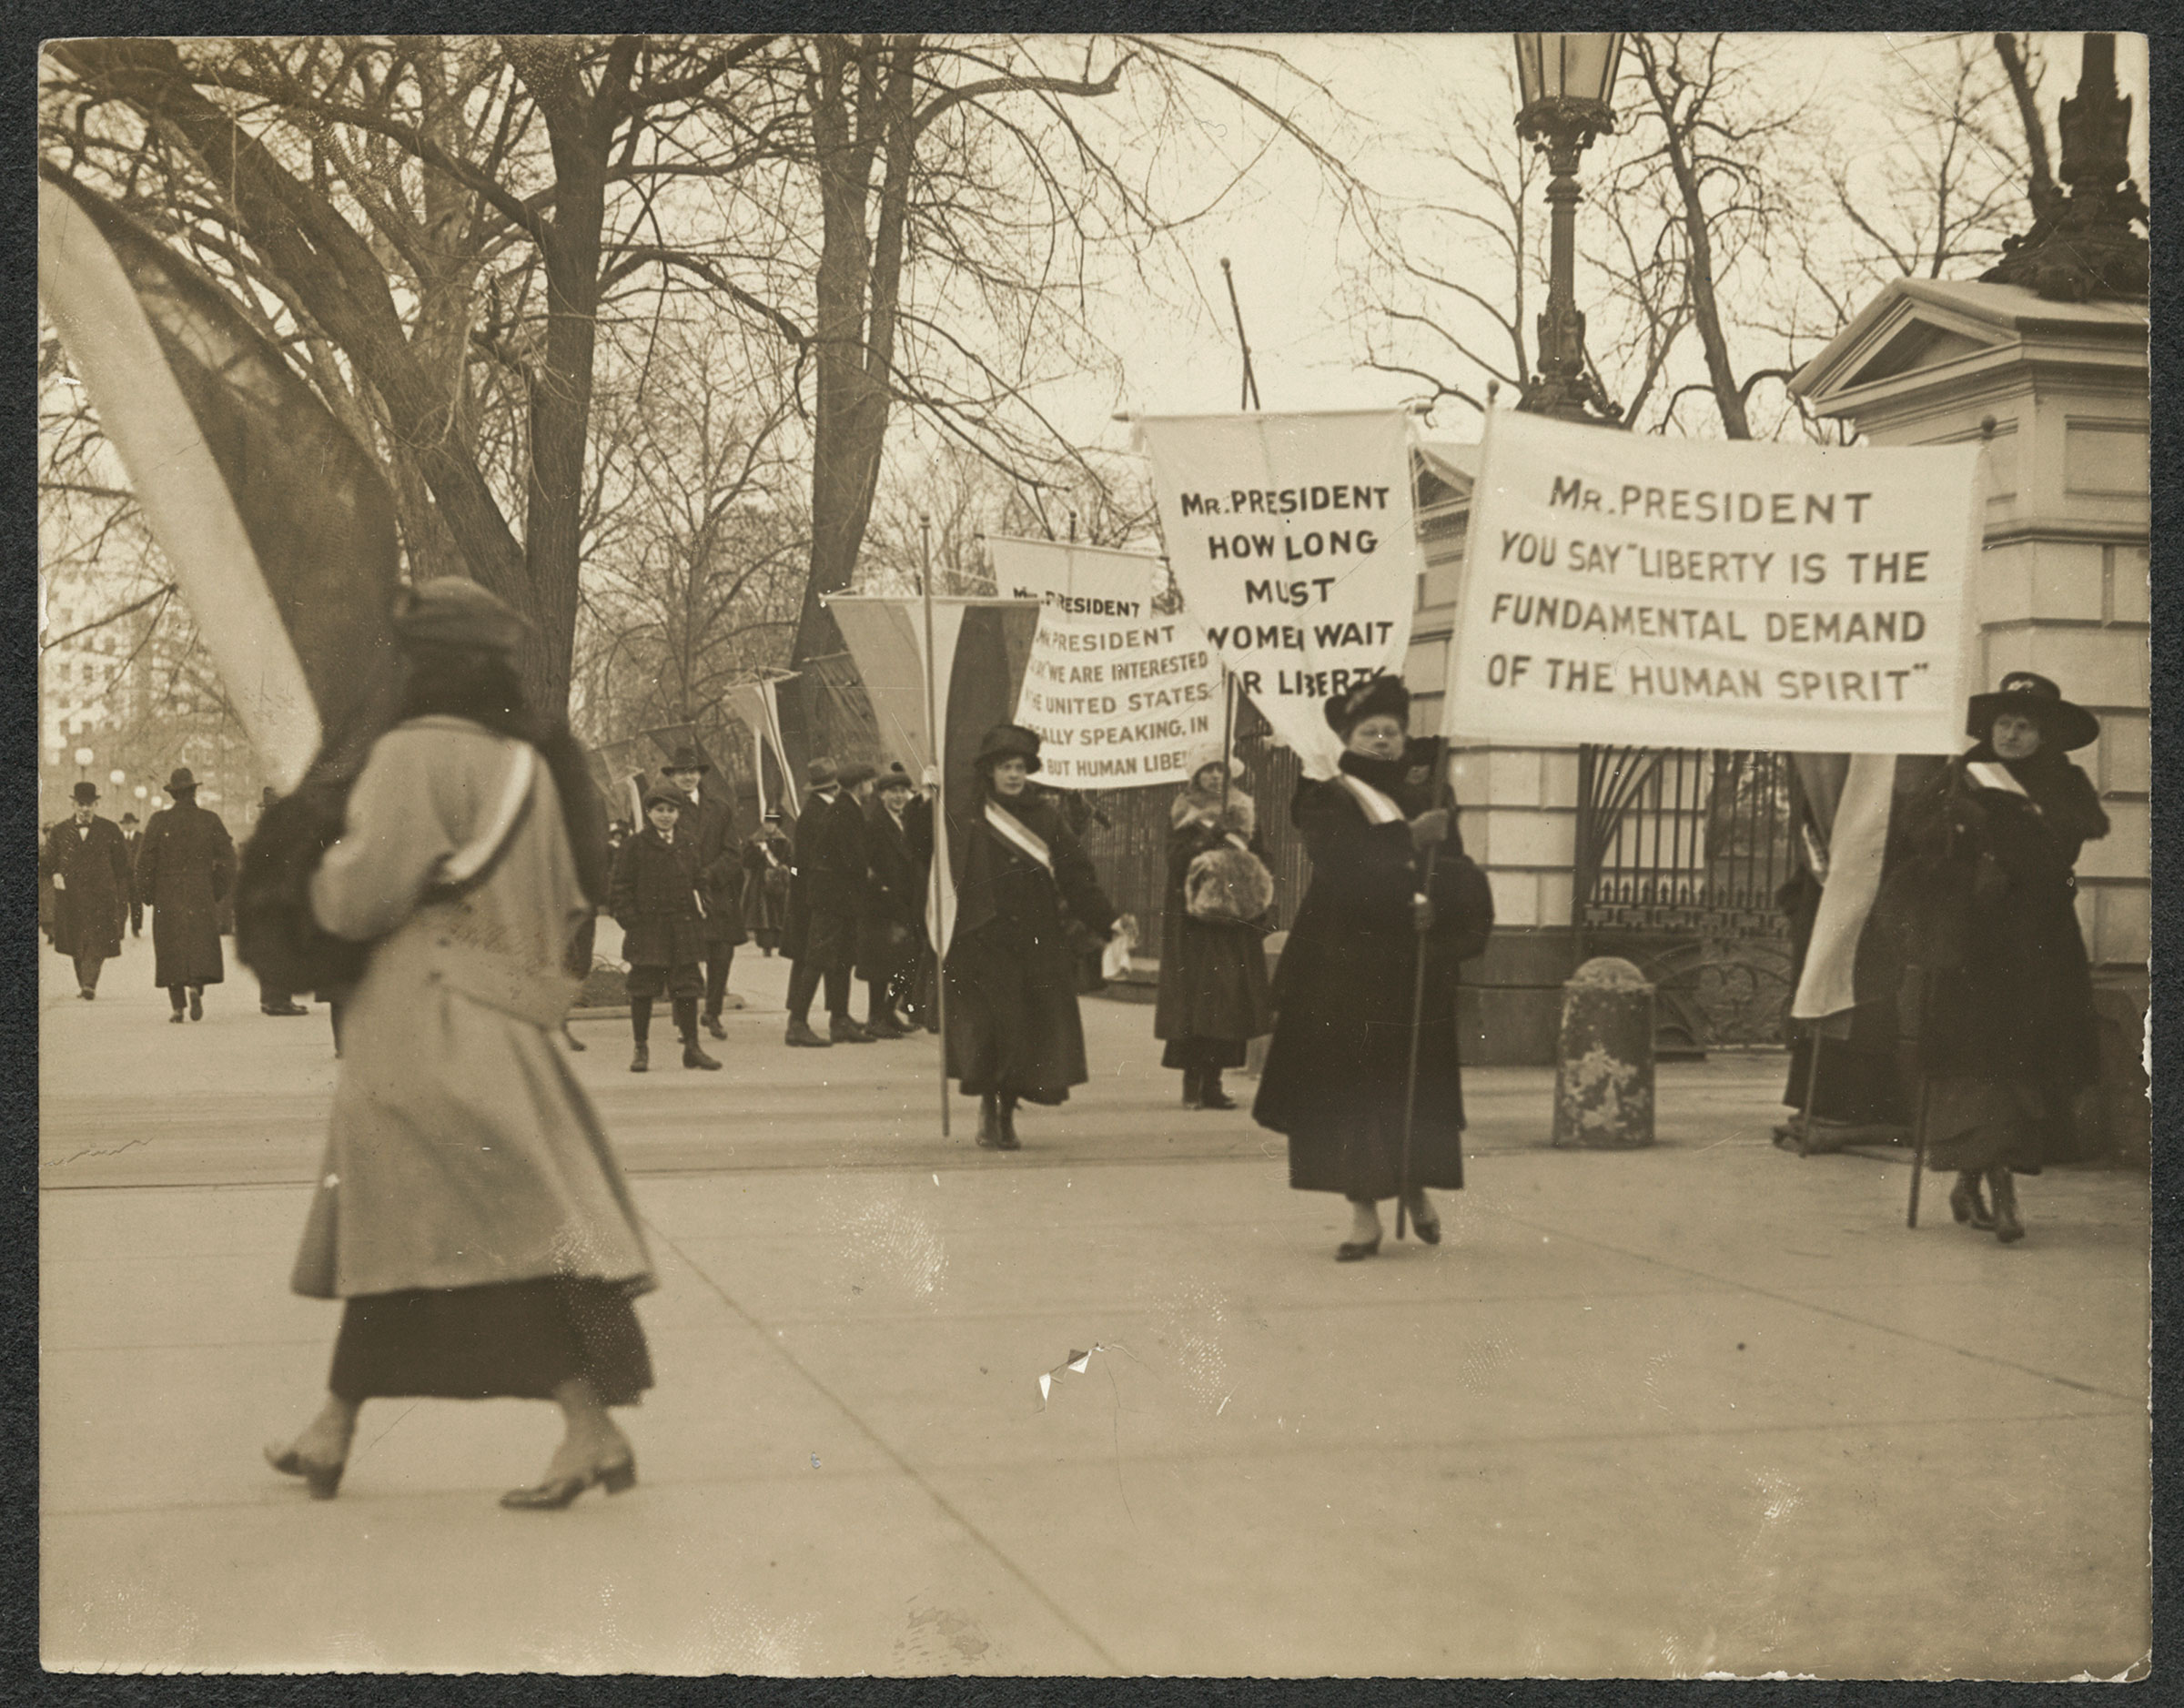 Suffragists picket with banners on the sidewalk in front of White House gates on Jan. 26, 1917.